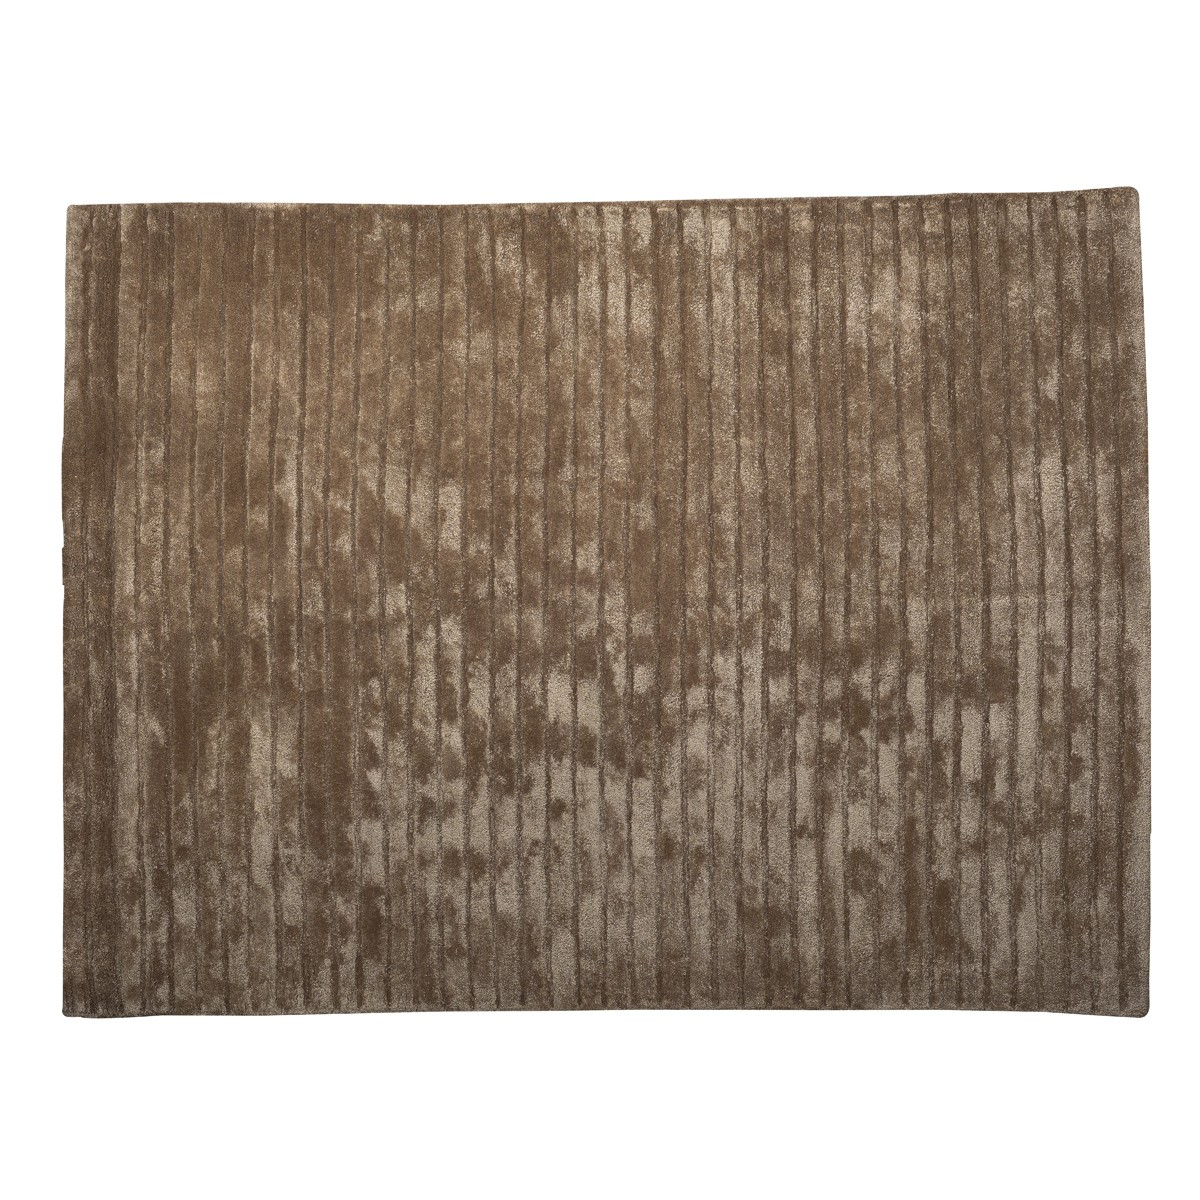 Bamboo  -  Stripe Rug in Taupe